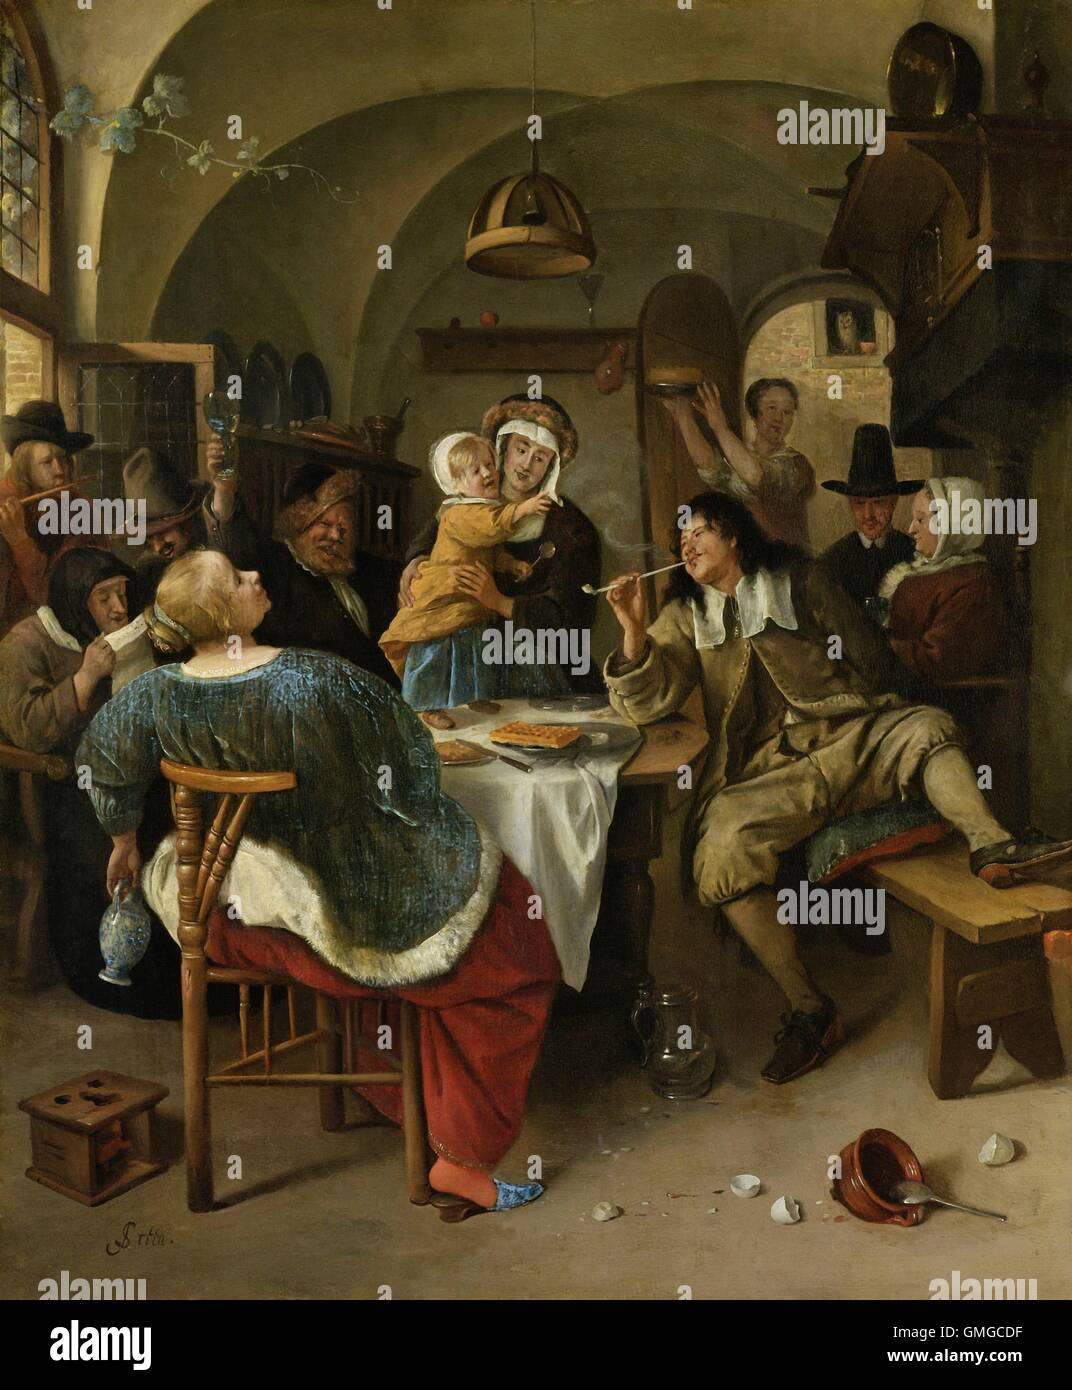 Family Scene, Jan Steen, 1660-79, oil on panel, Dutch painting, oil on  panel. Family singing and dancing around a table with raised glass, food,  ...